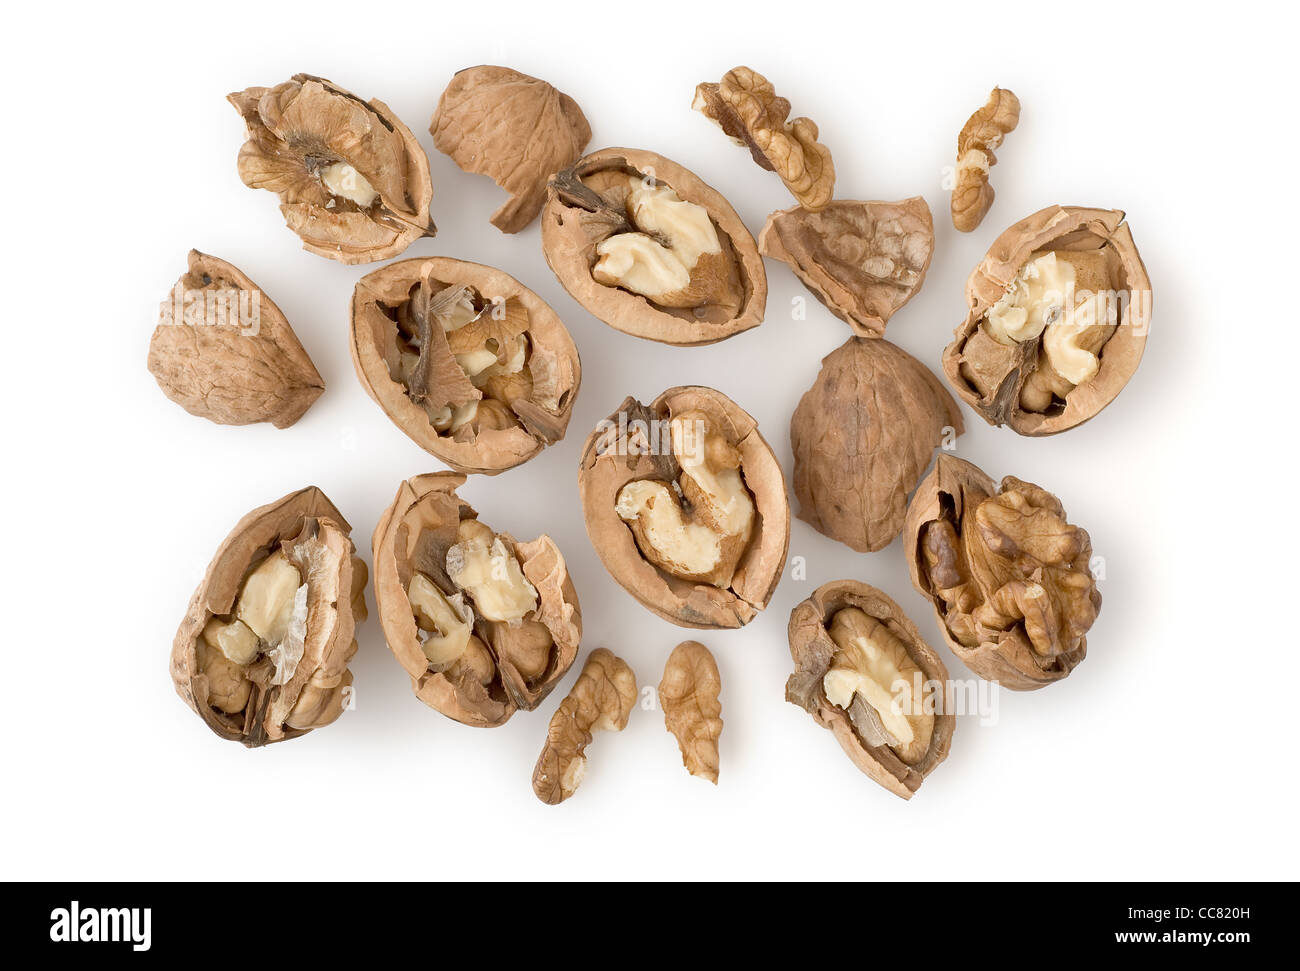 Walnuts as Healthy and Nutritious Dietary Supplement - Stock Image